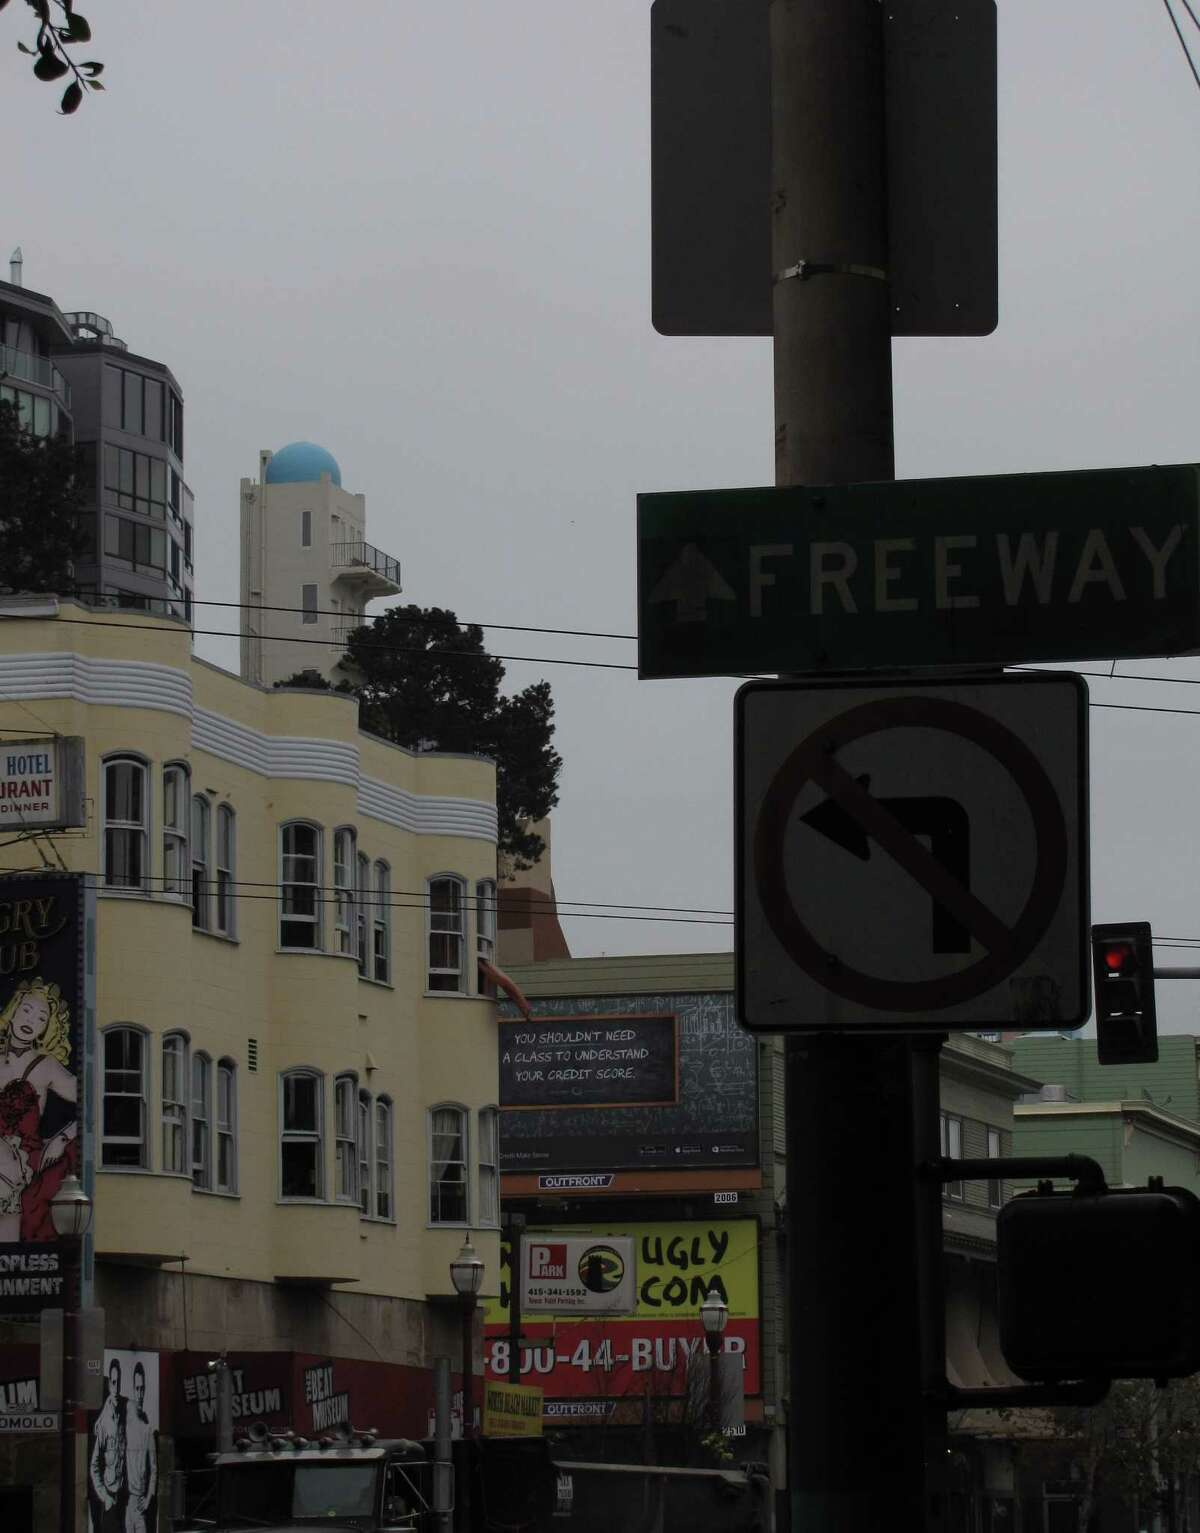 Pasquale's Tower, reached by an alley off a steep block of Kearny Street, is one of the most distinct buildings on Telegraph Hill . It was built by an Italian immigrant, Pasquale Gagno, in 1933.